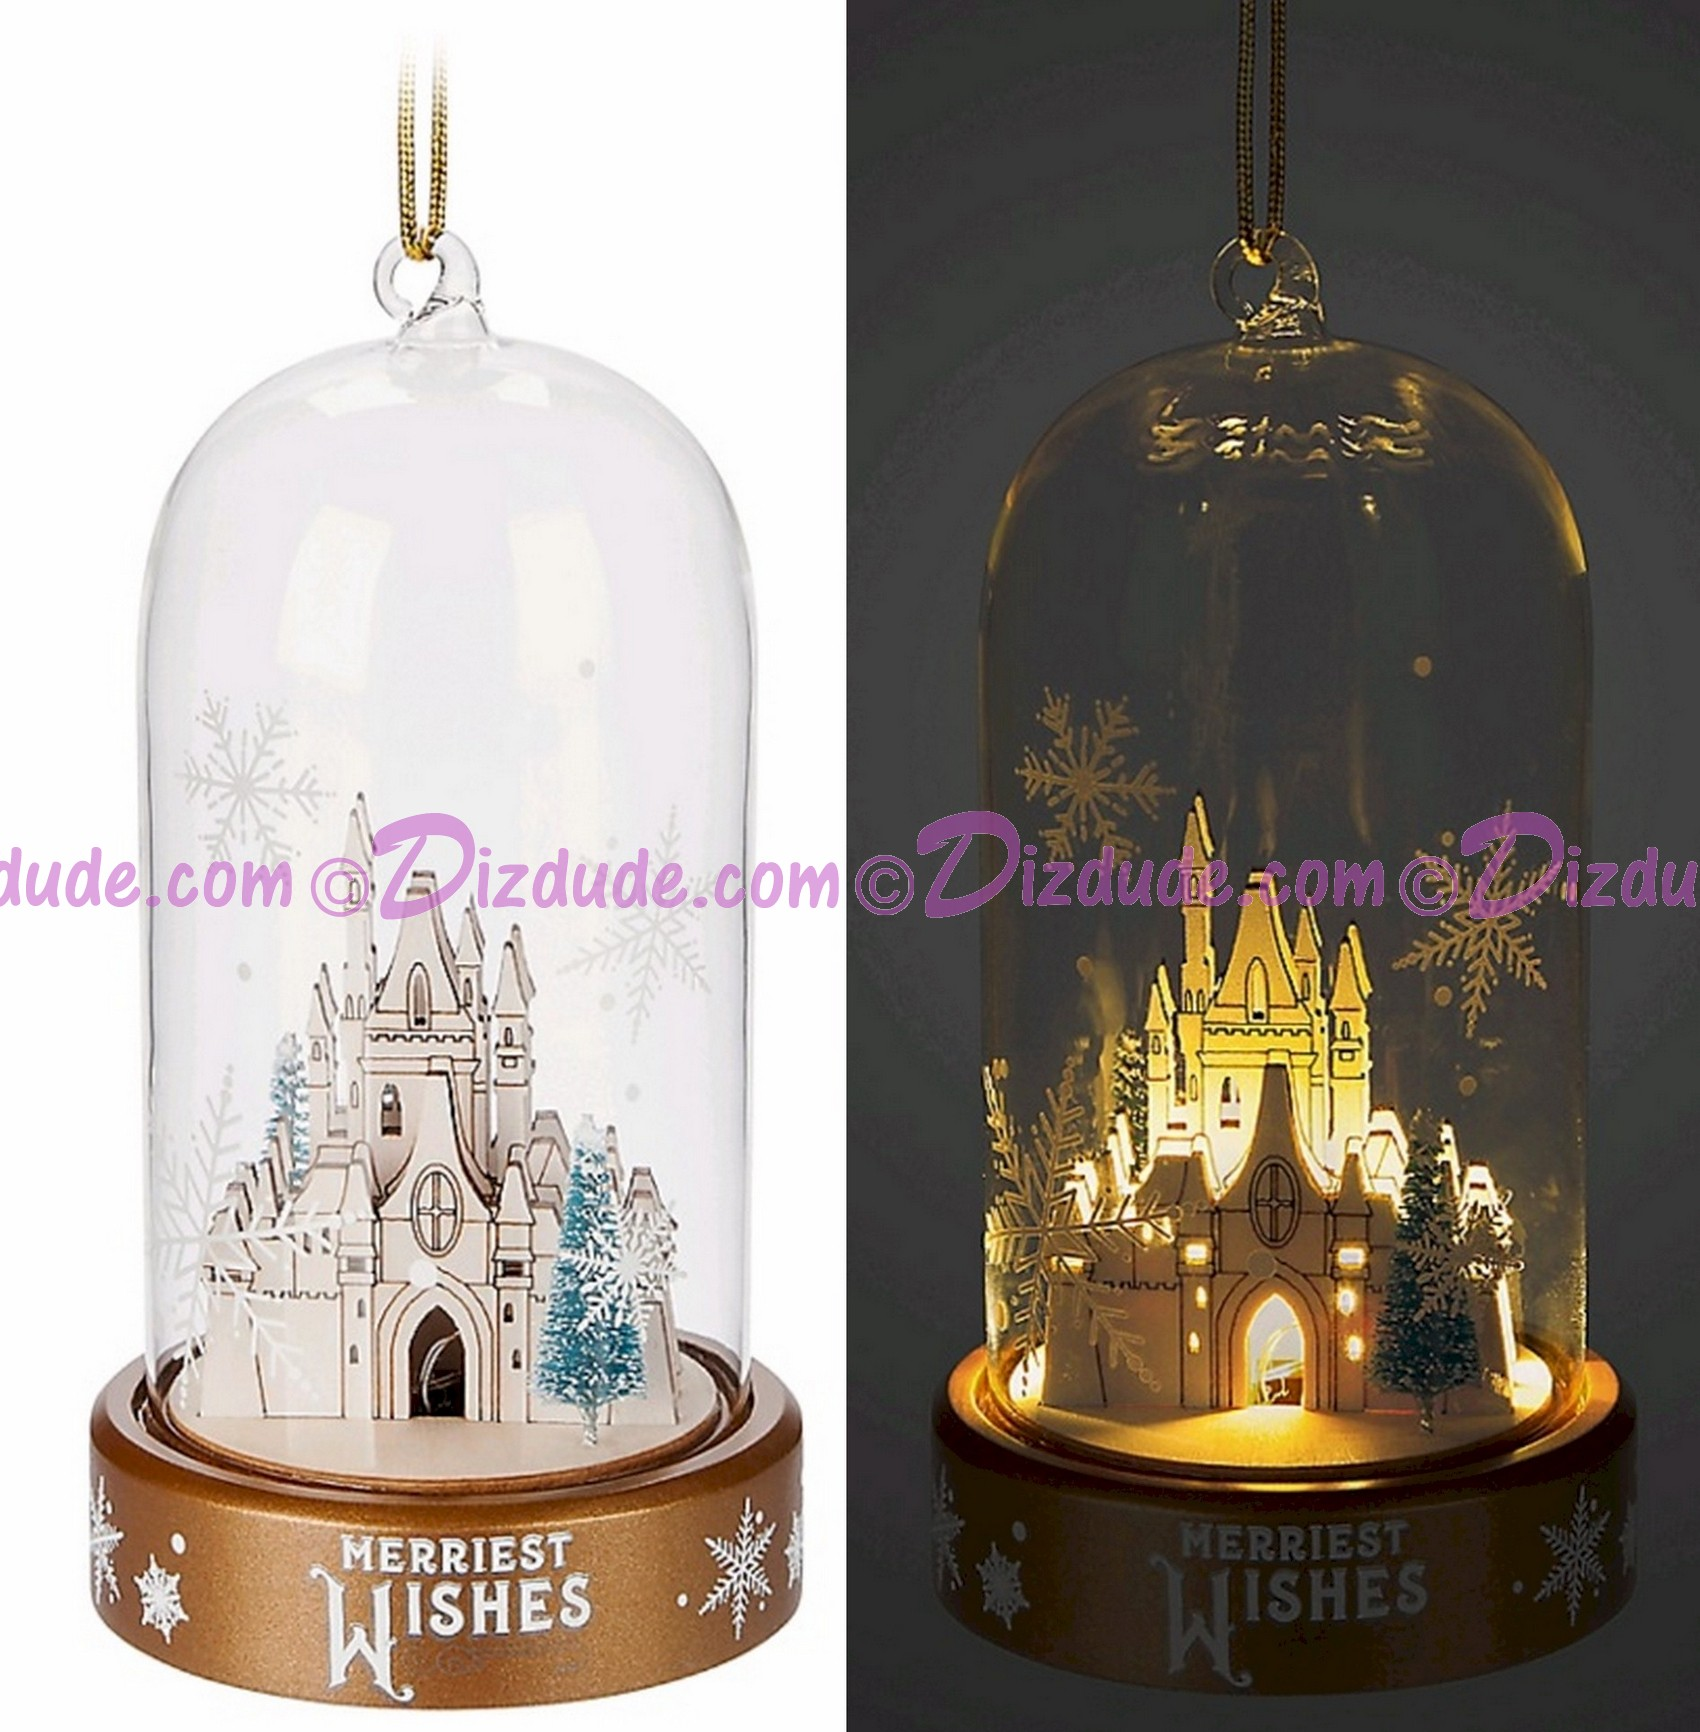 Disney Turn of the Century Light Up Dome Christmas Ornament © Dizdude.com